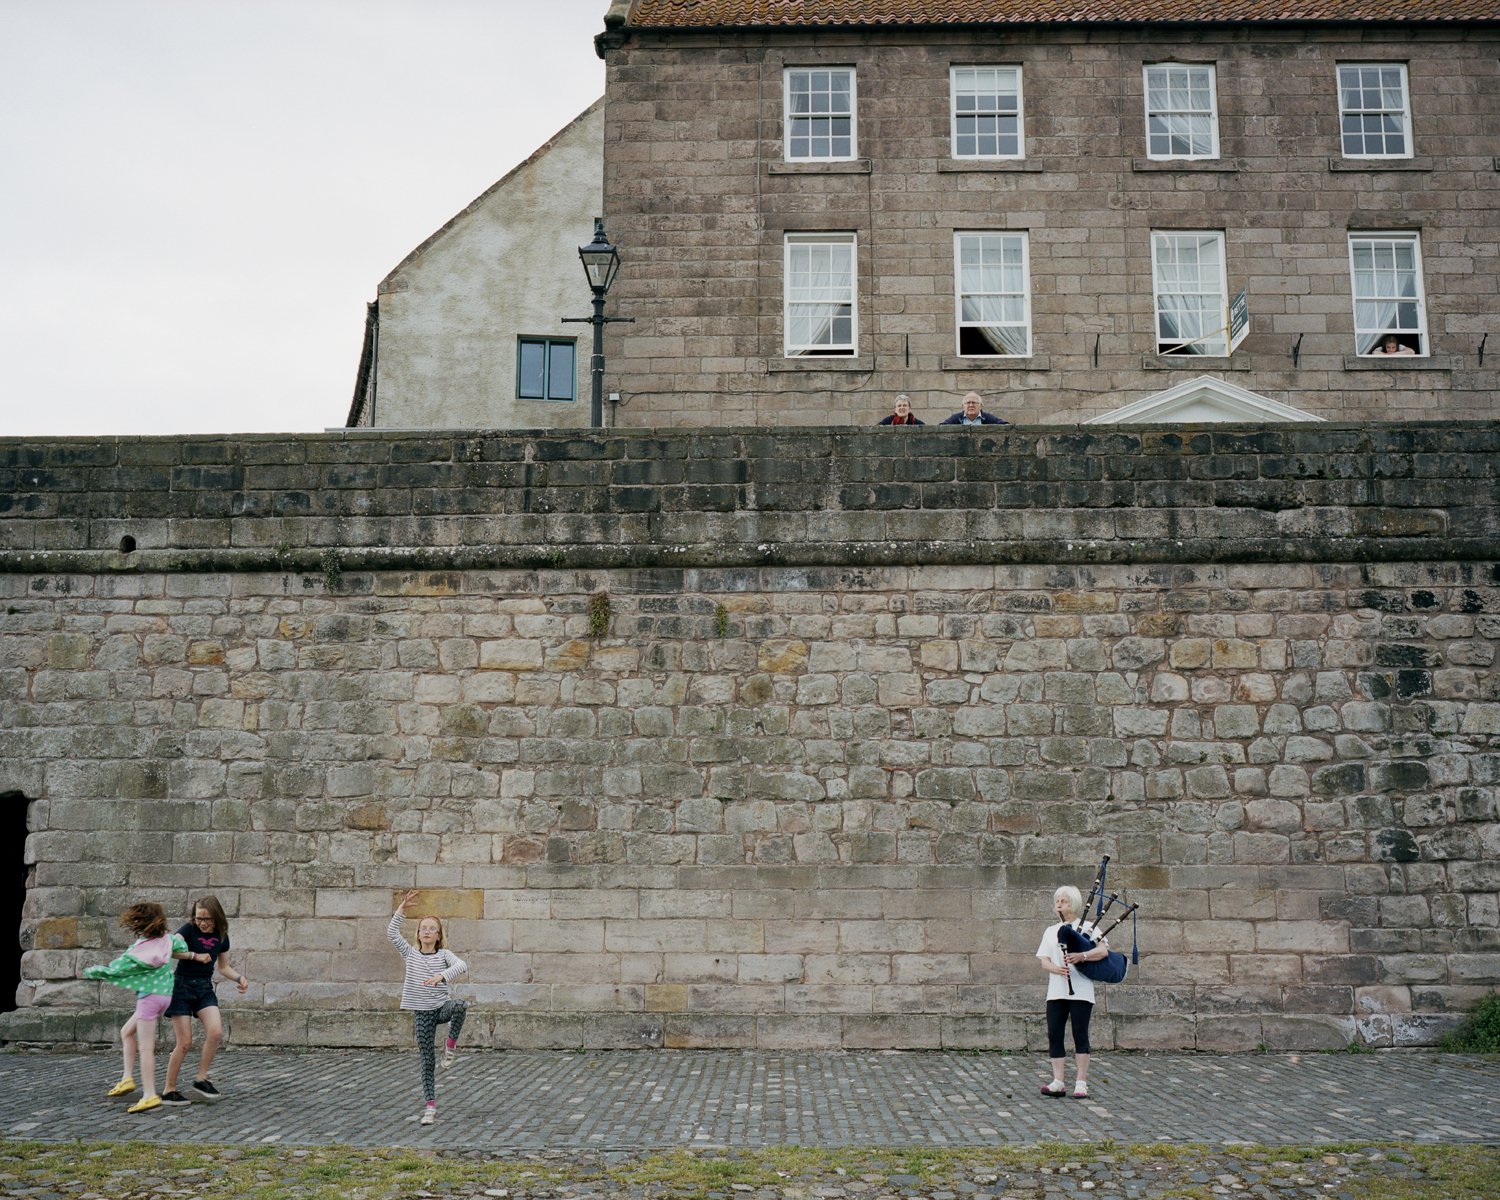 Iris playing bagpipes outside Berwick-Upon-Tweed's town walls, which were built in the early 14th century under Edward I, following his capture of the city from the Scots.